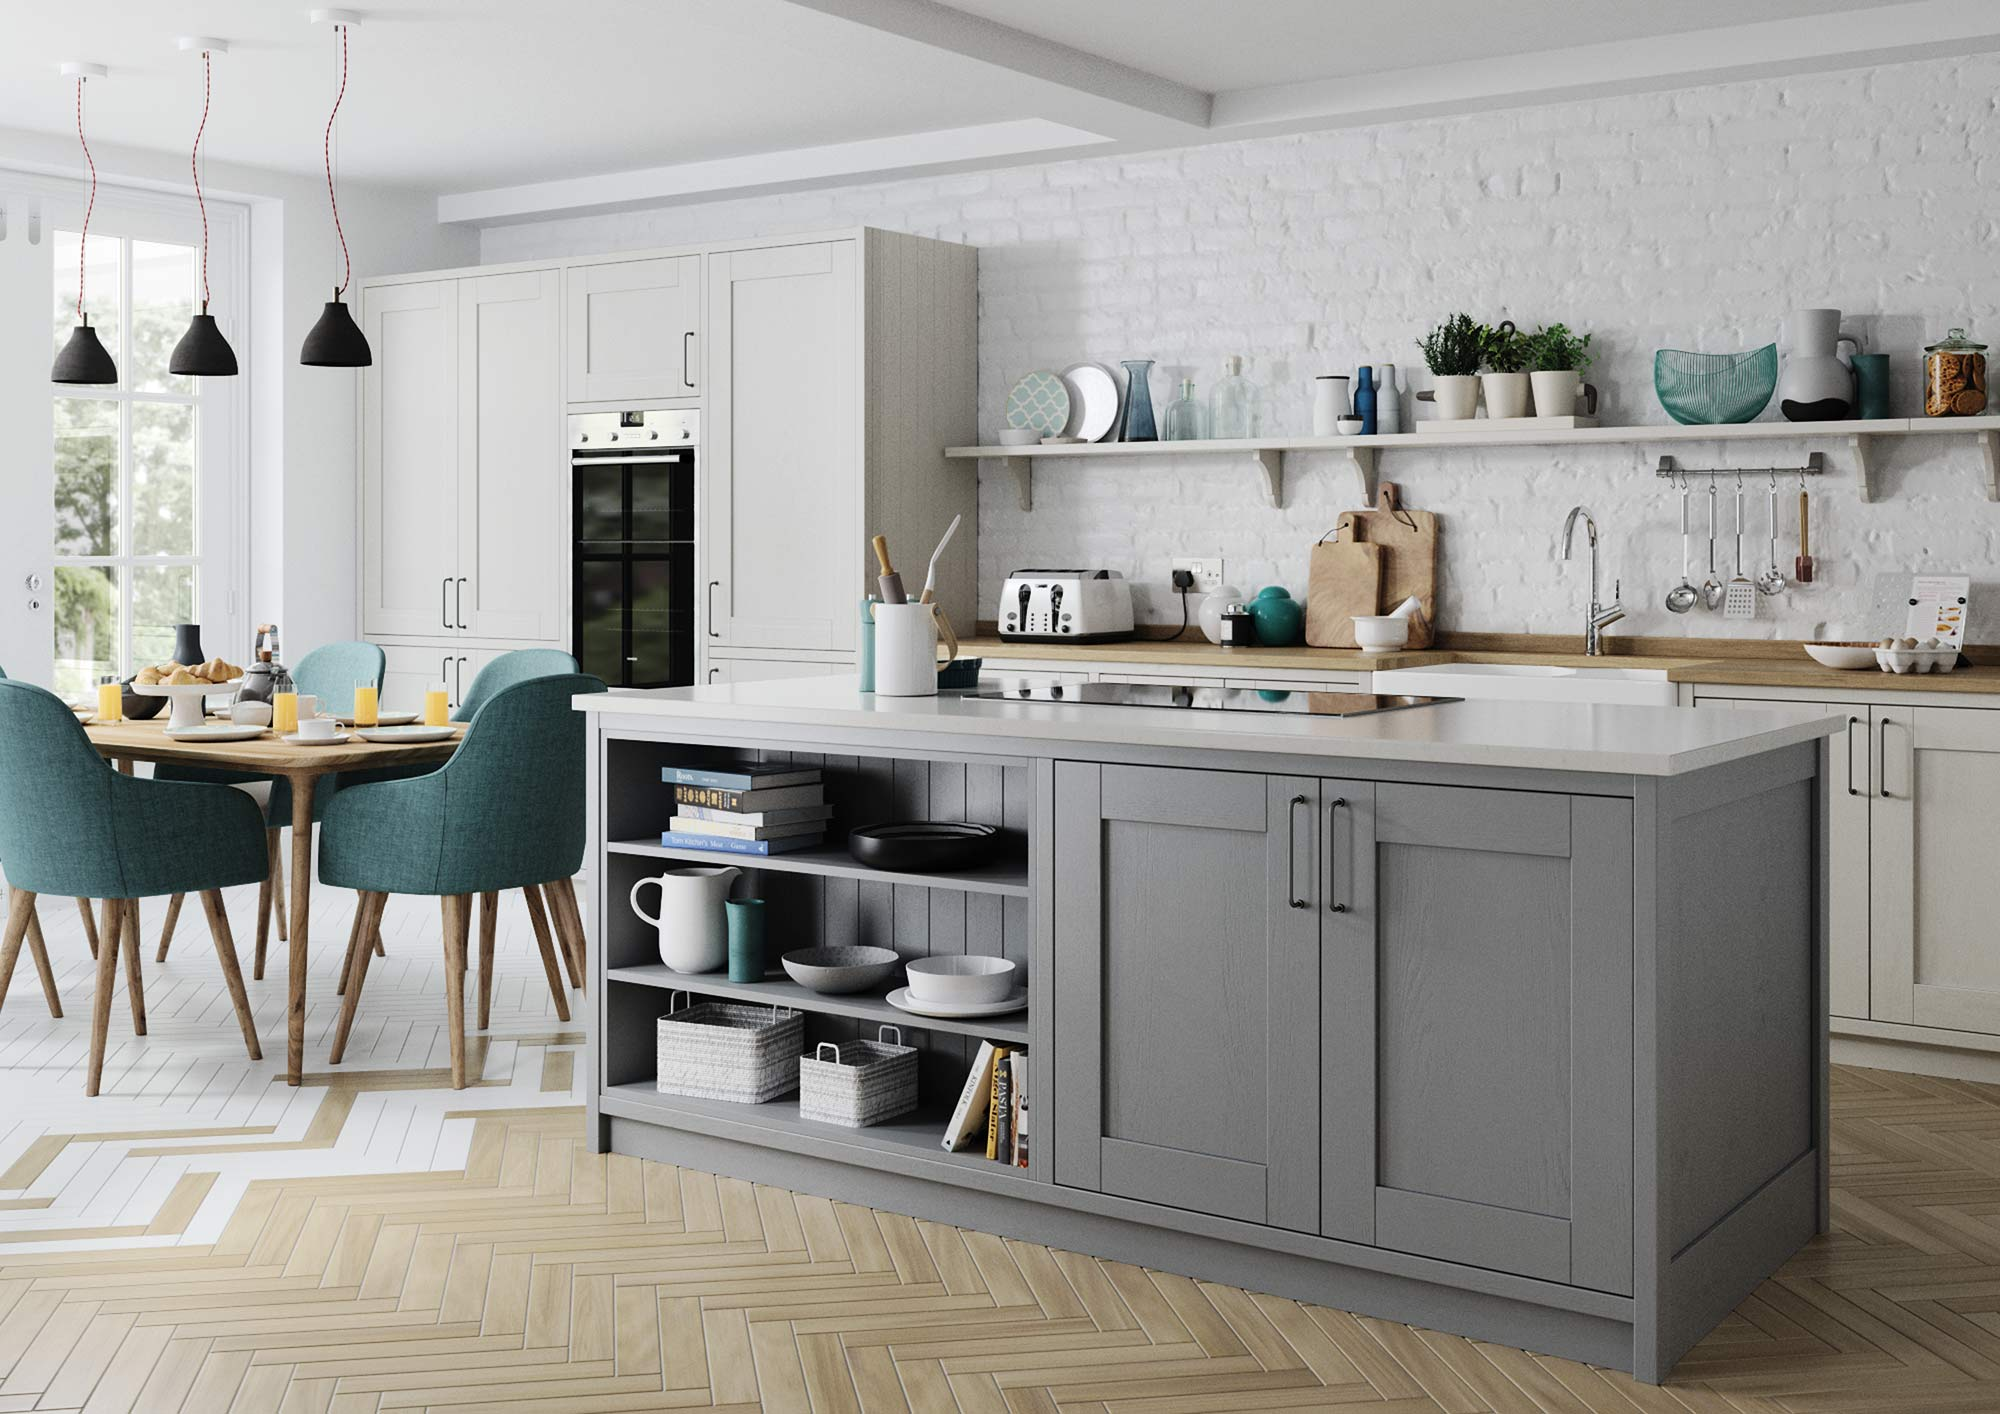 Contemporary shaker style kitchen painted light grey and dust grey